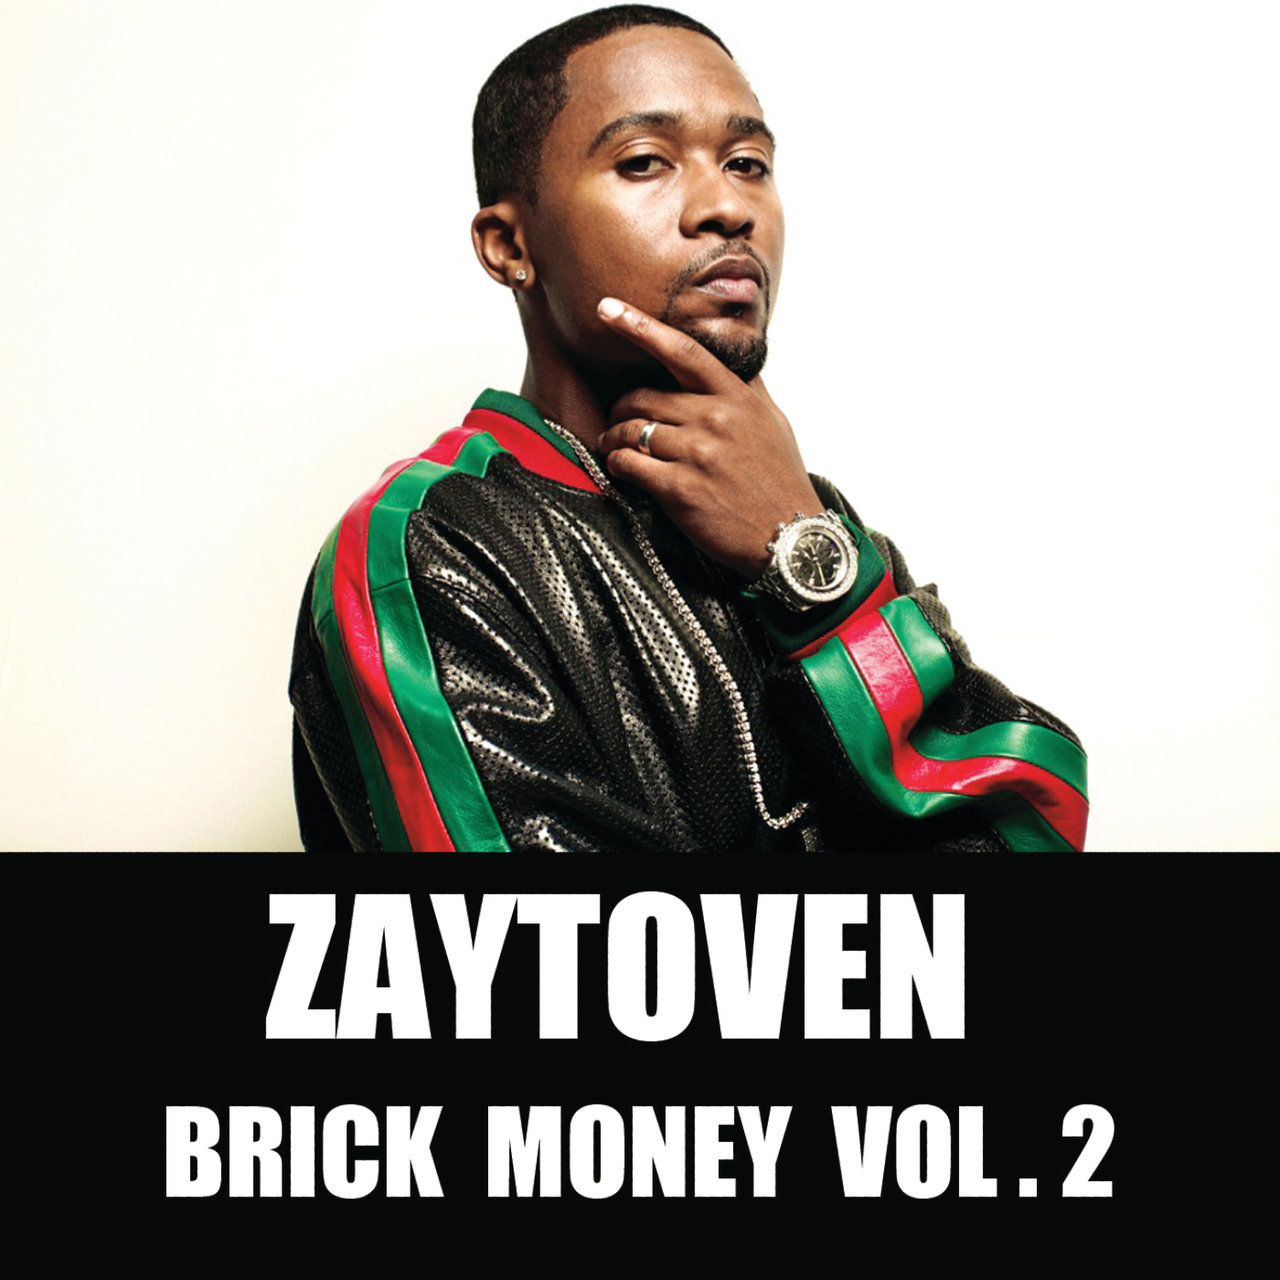 BRICK MONEY VOL. 2 (SINGLE)